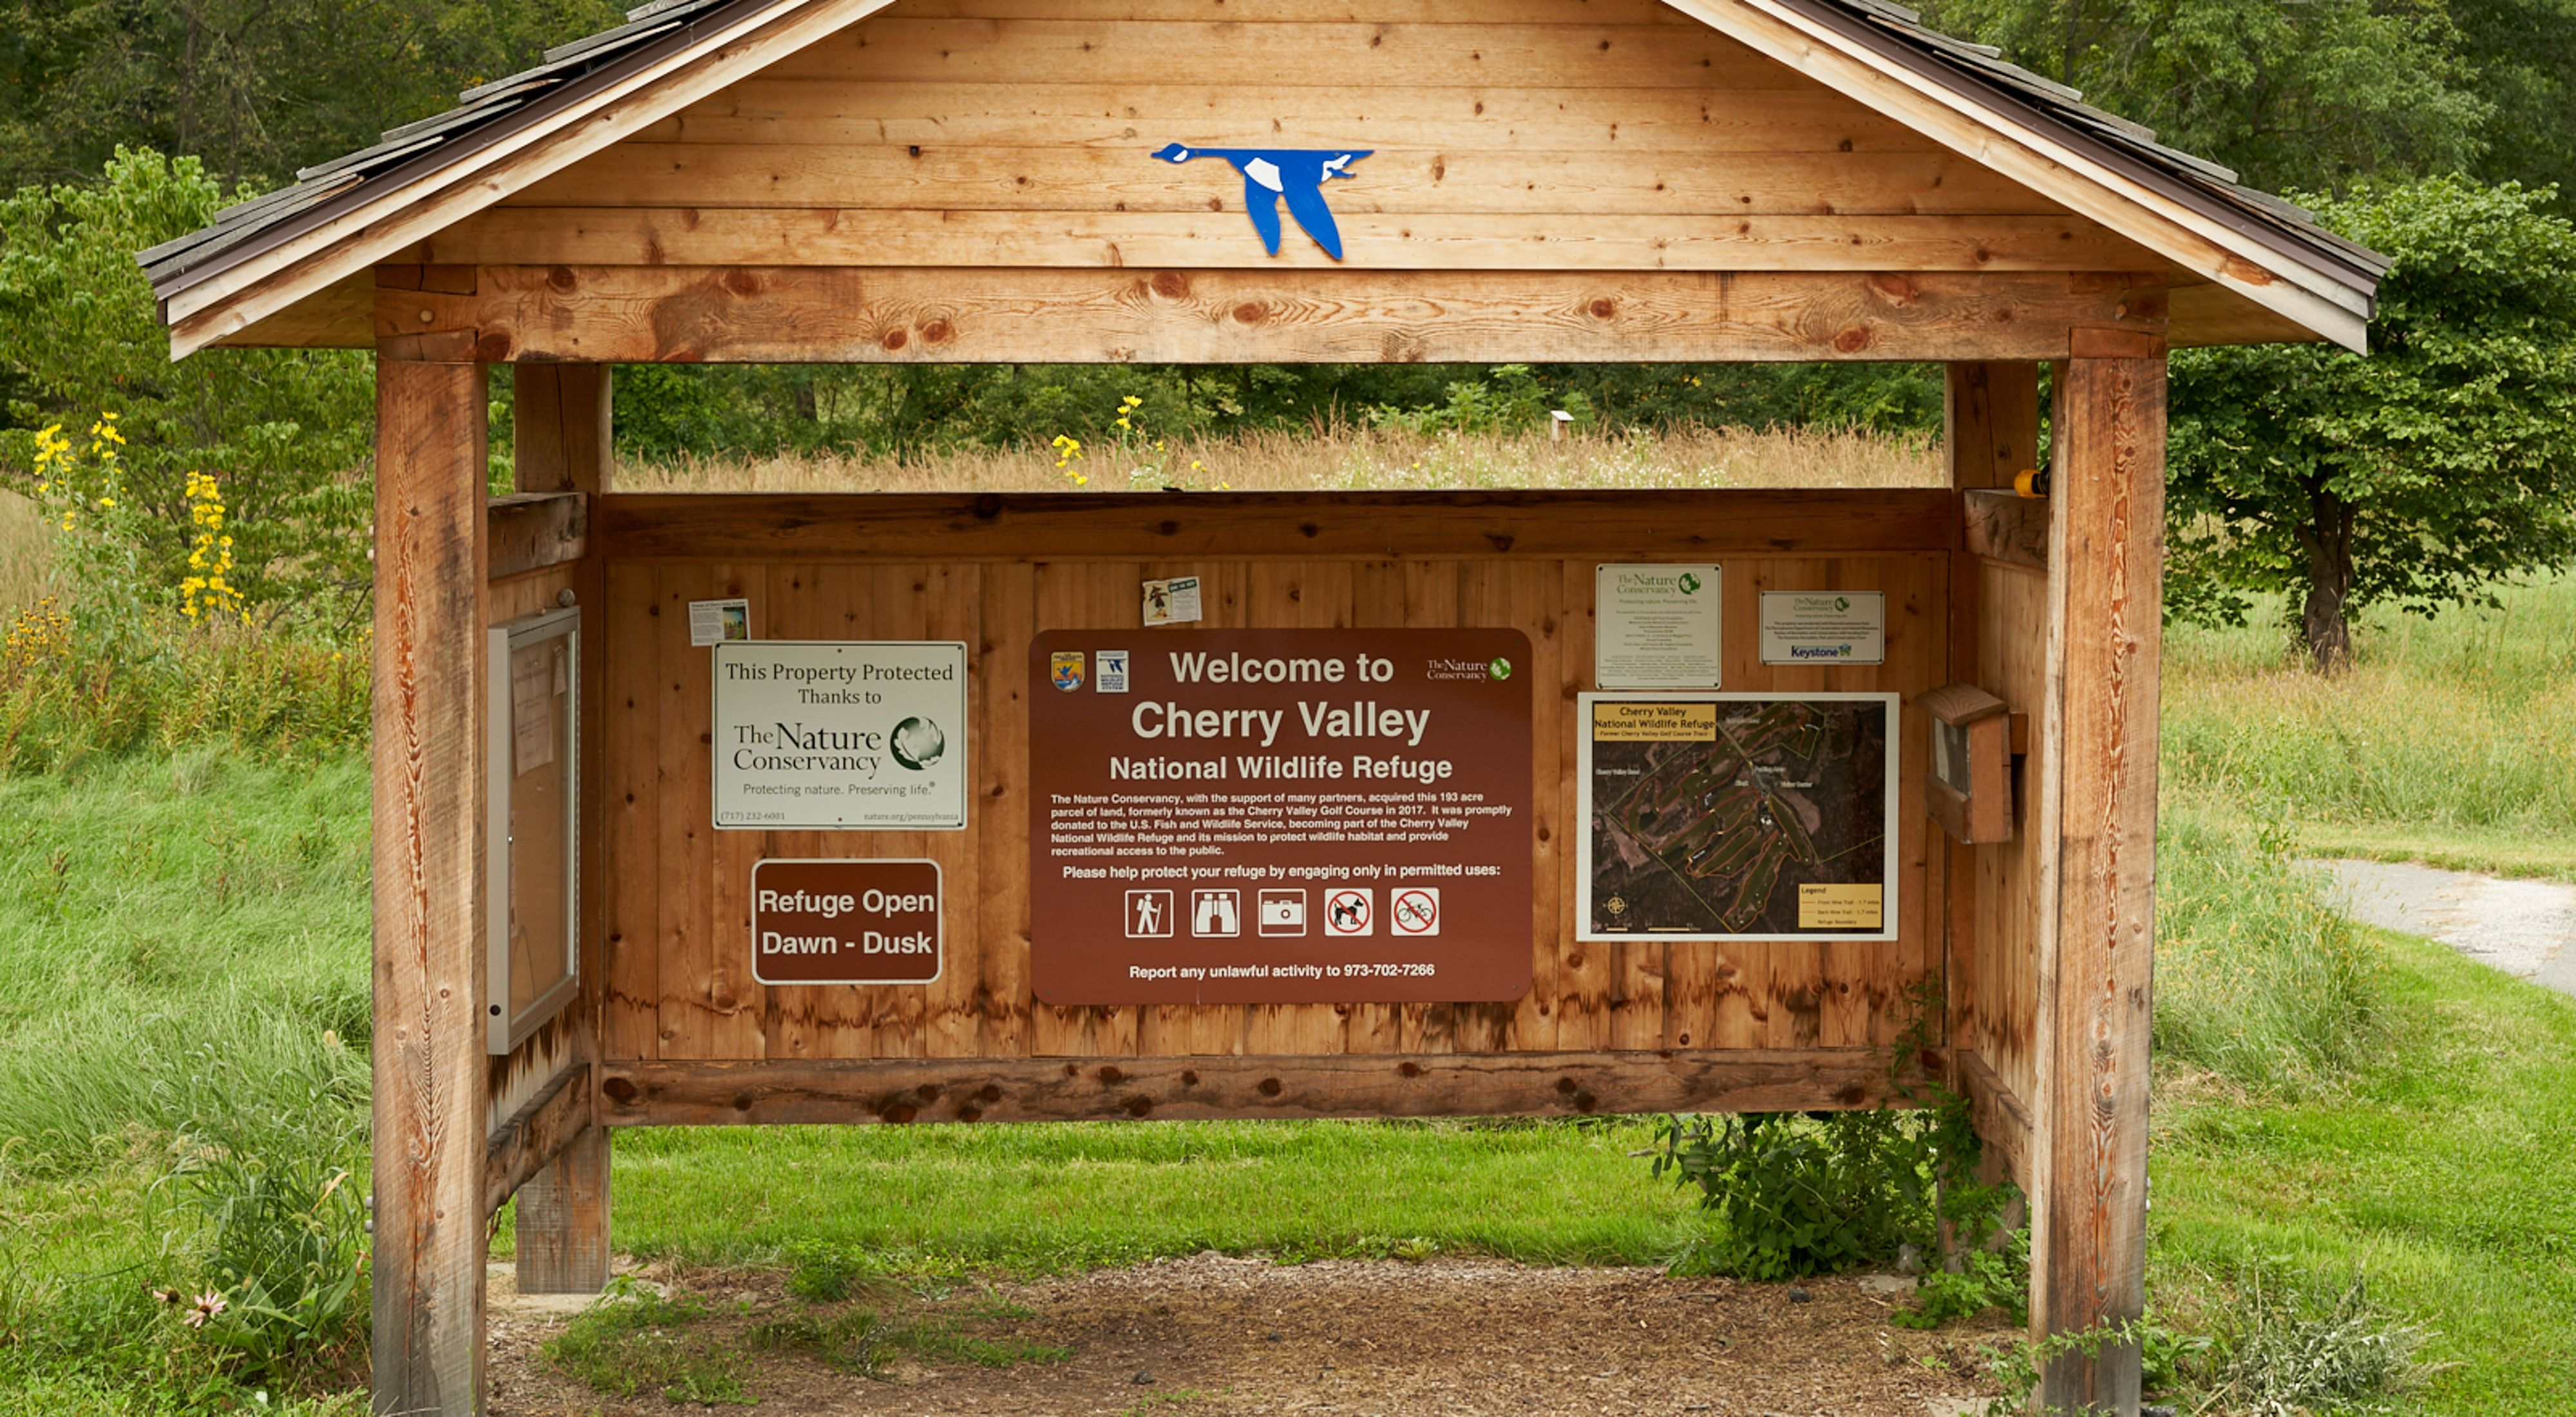 A wooden kiosk welcome visitors to Cherry Valley. The rear wall of the covered kiosk is covered with signs and maps providing visitor information.